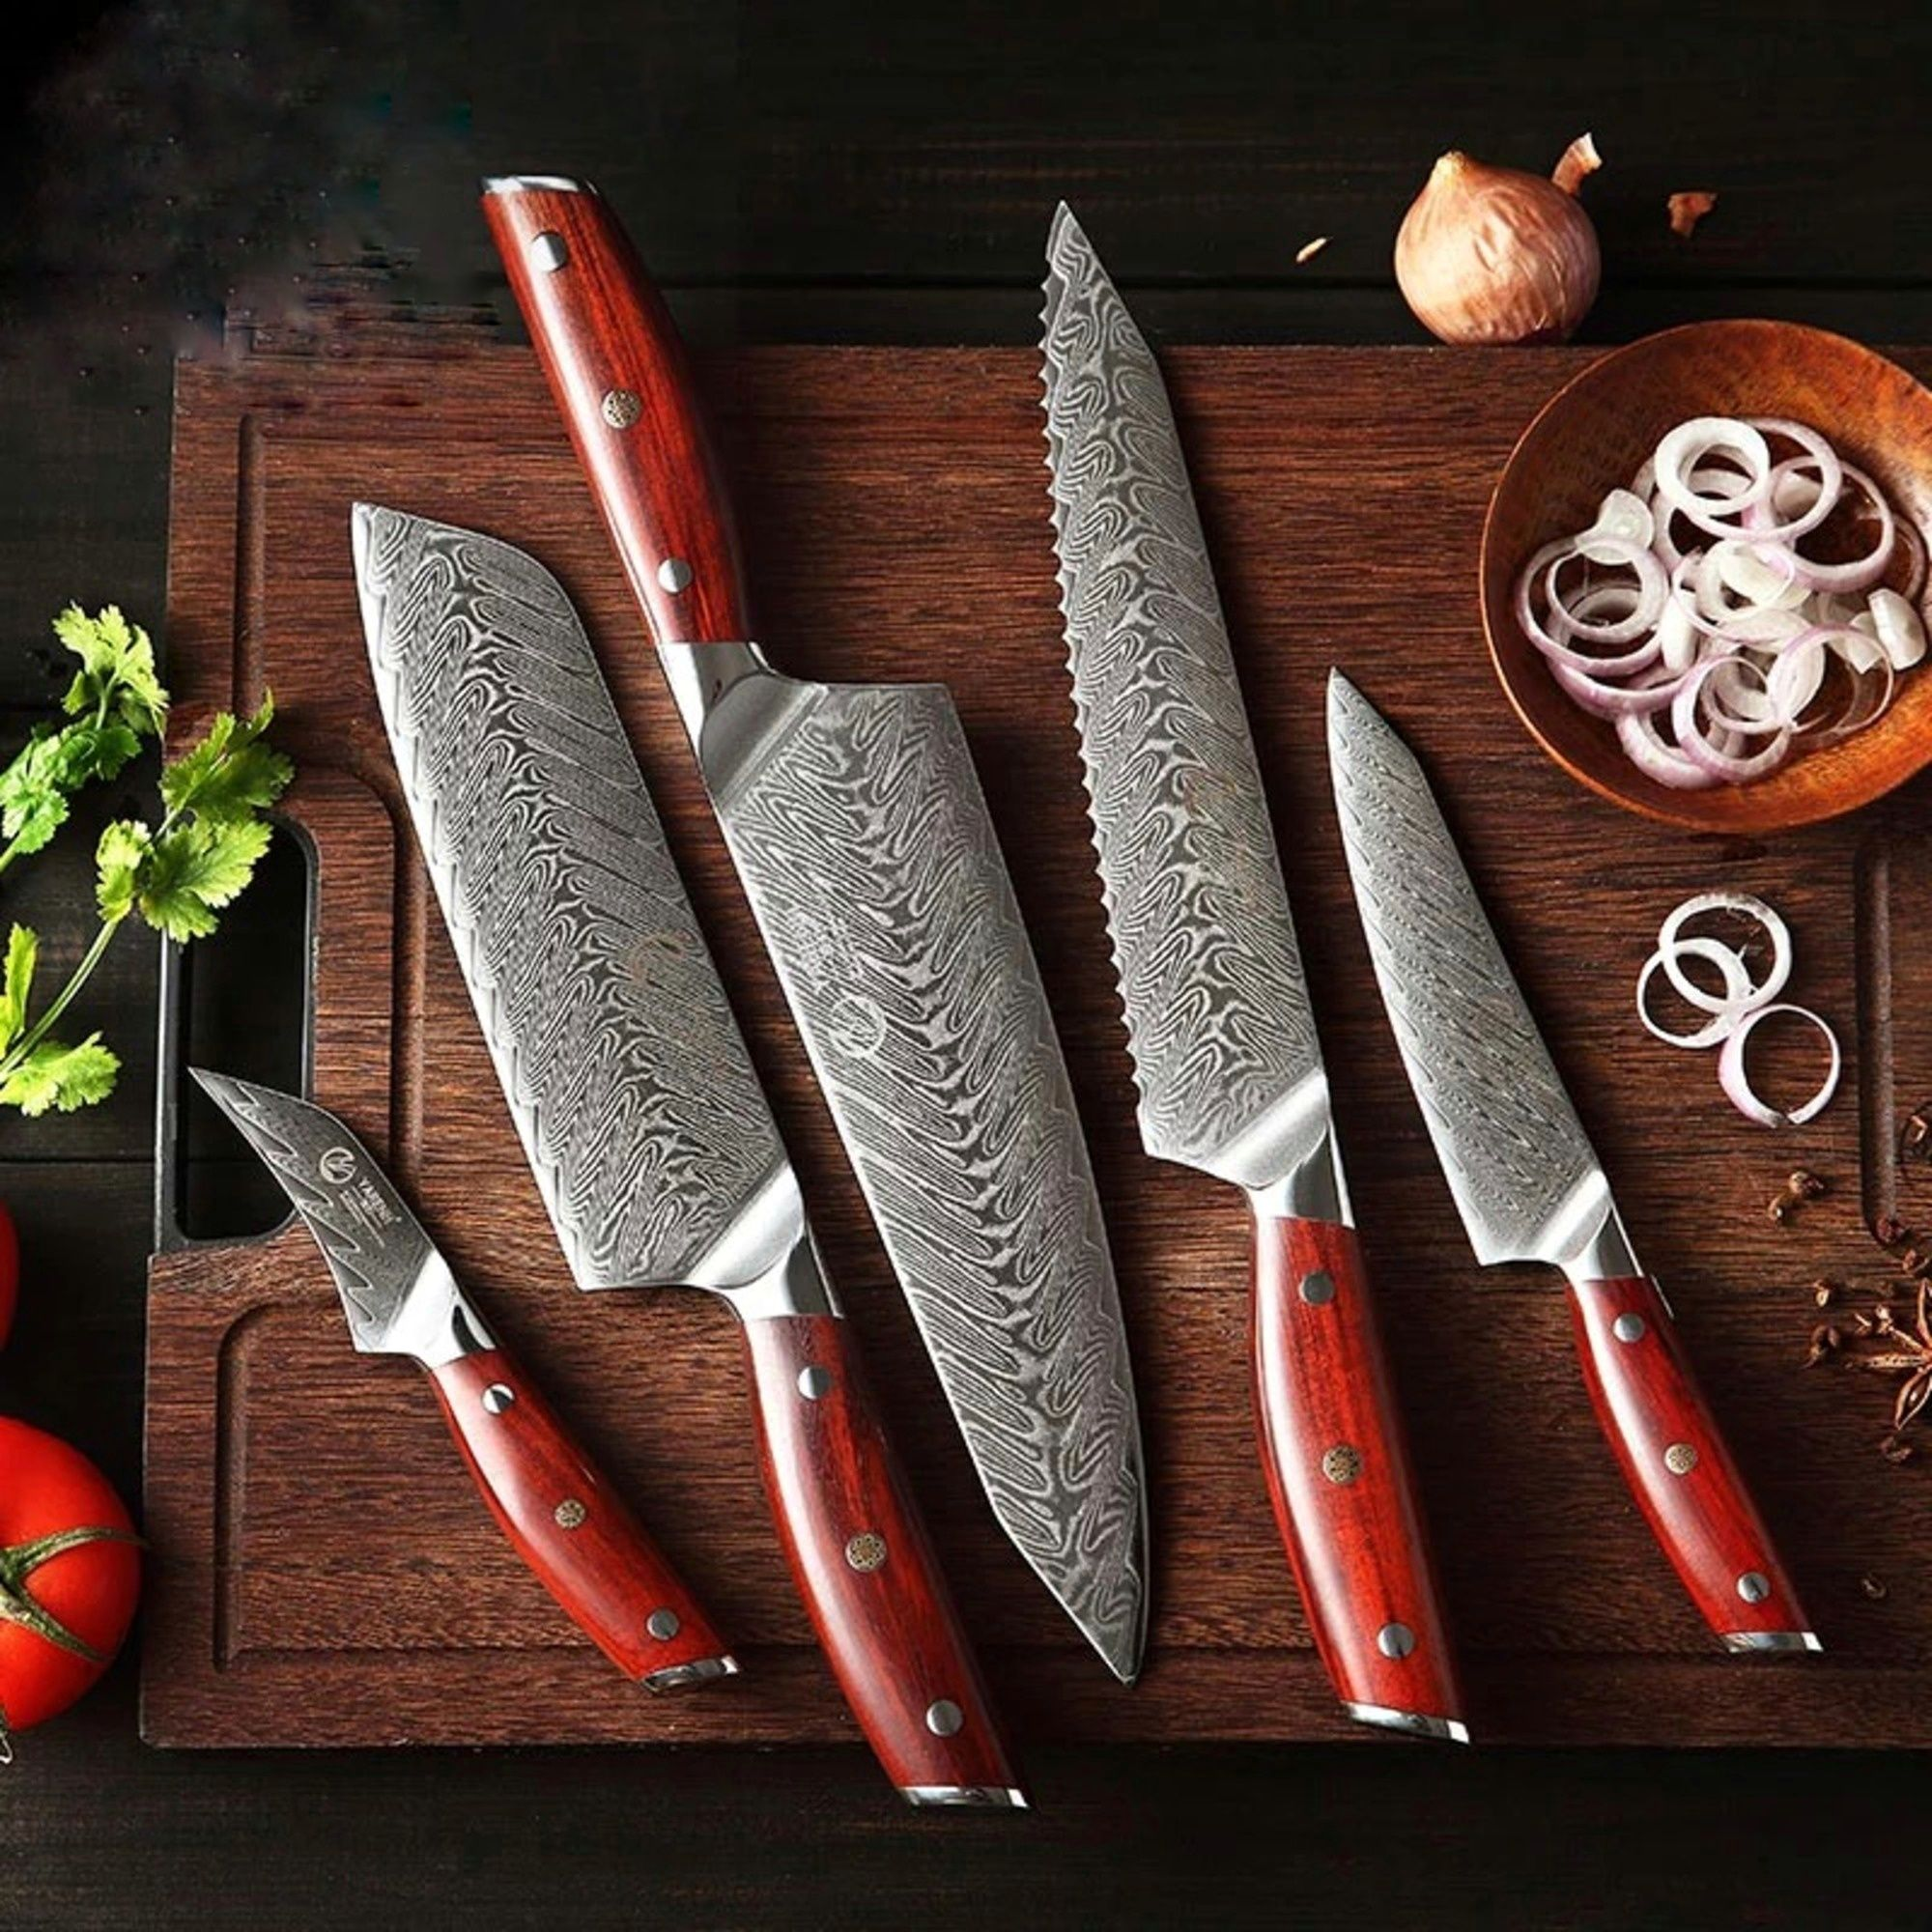 5 Pcs High Quality Damascus Steel Kitchen Knife Set With Gift Etsy Knife Set Kitchen Damascus Steel Kitchen Knives Damascus Chef Knives